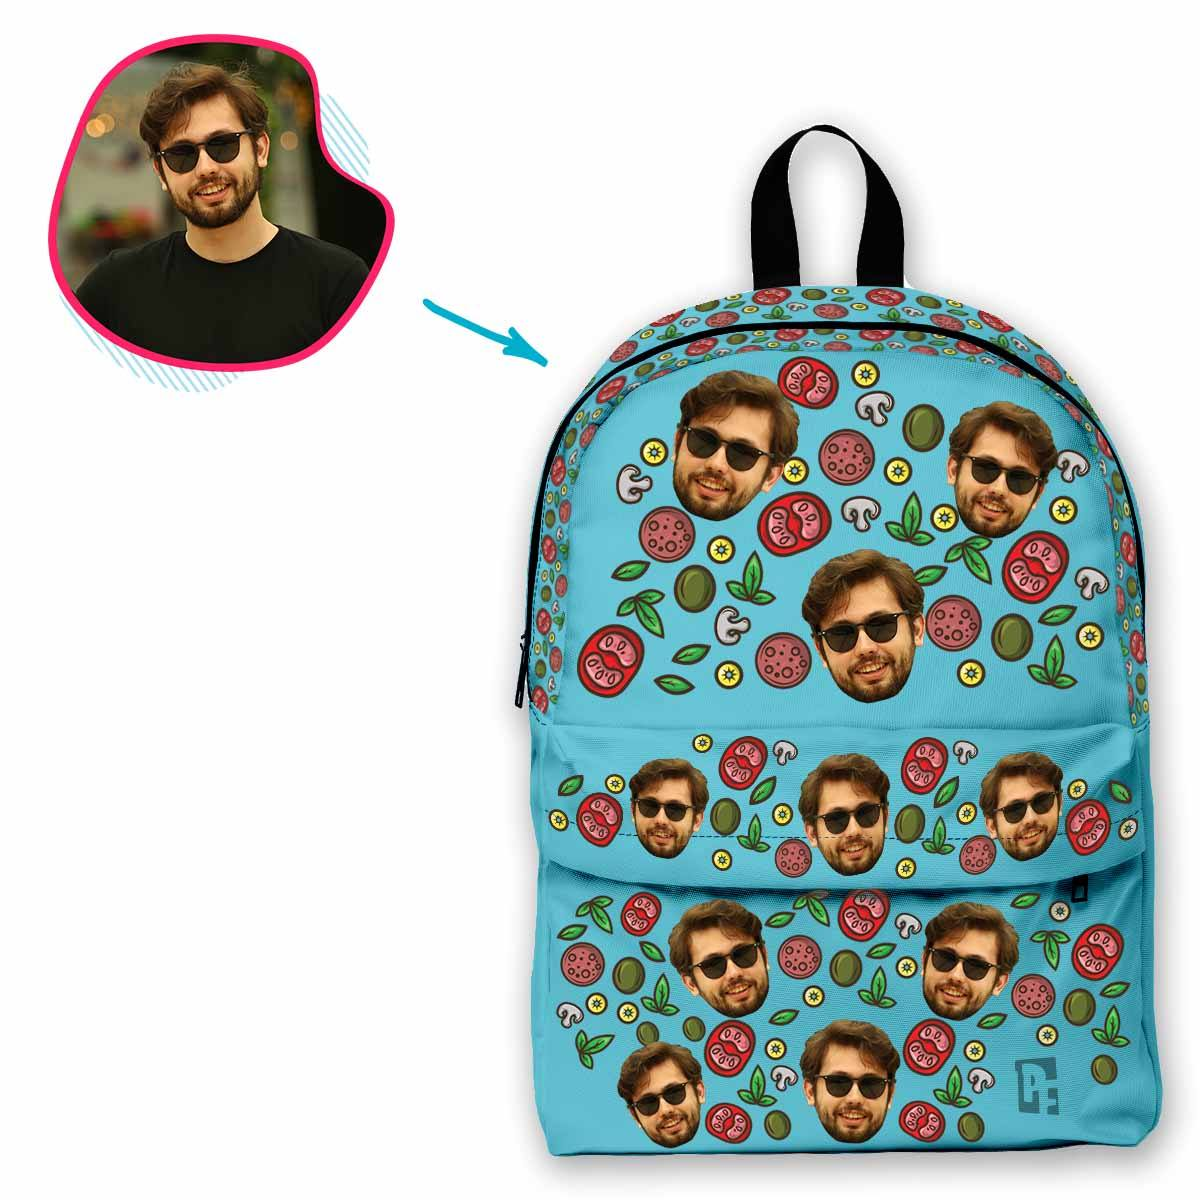 blue Pizza classic backpack personalized with photo of face printed on it